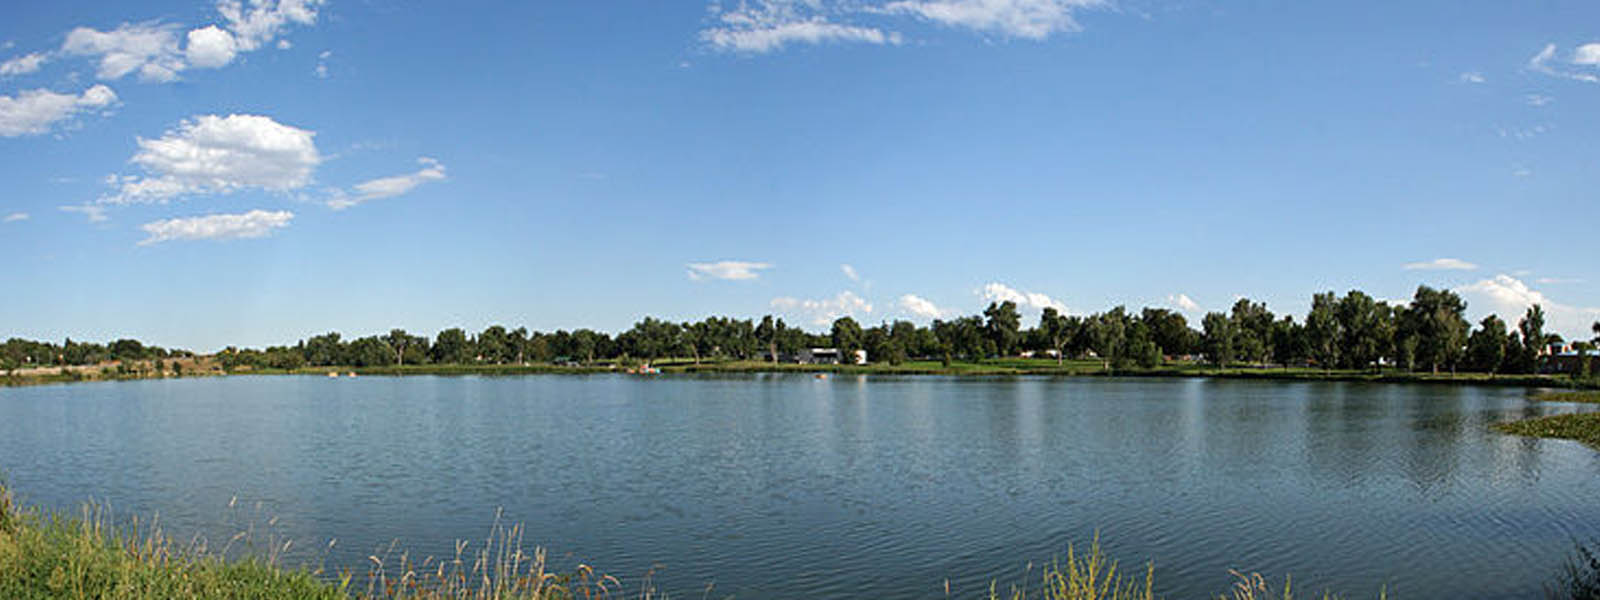 Berkeley Lake Park in Berkeley Denver Colorado